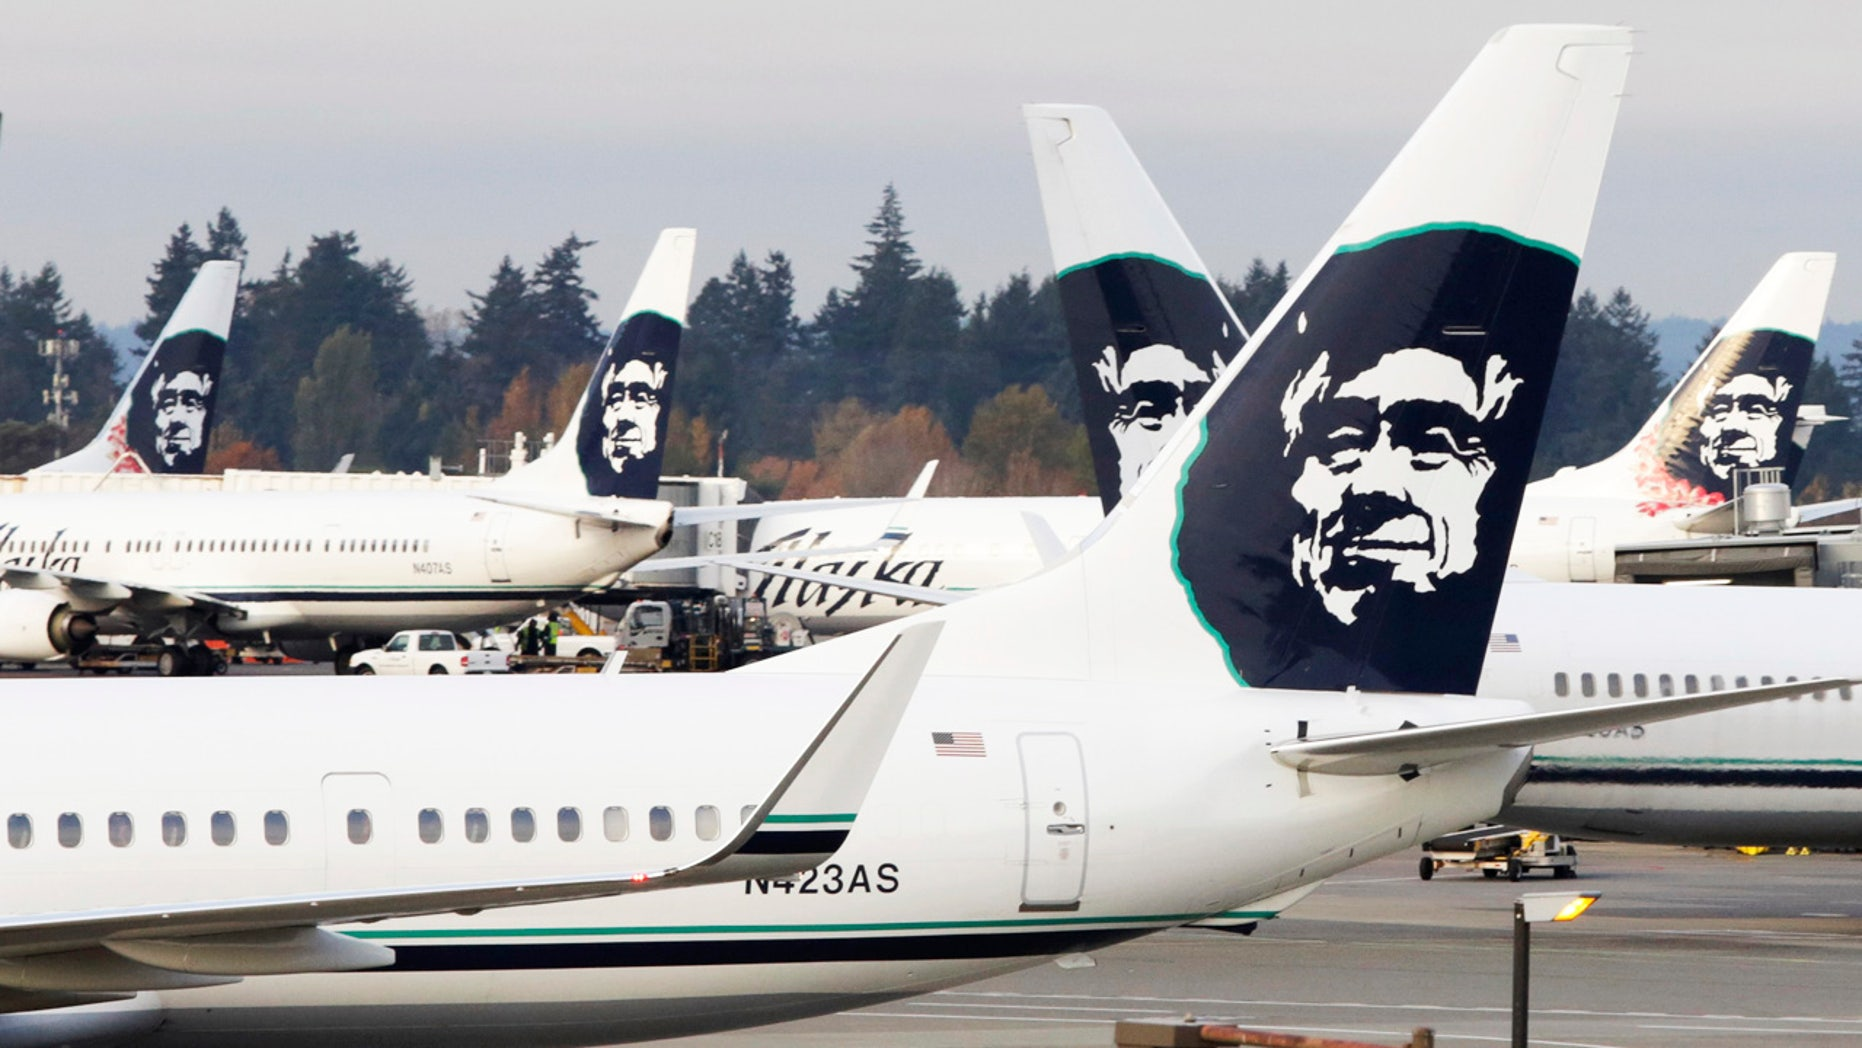 Alaska Airlines is cleaning up a very messy cargo hold situation.